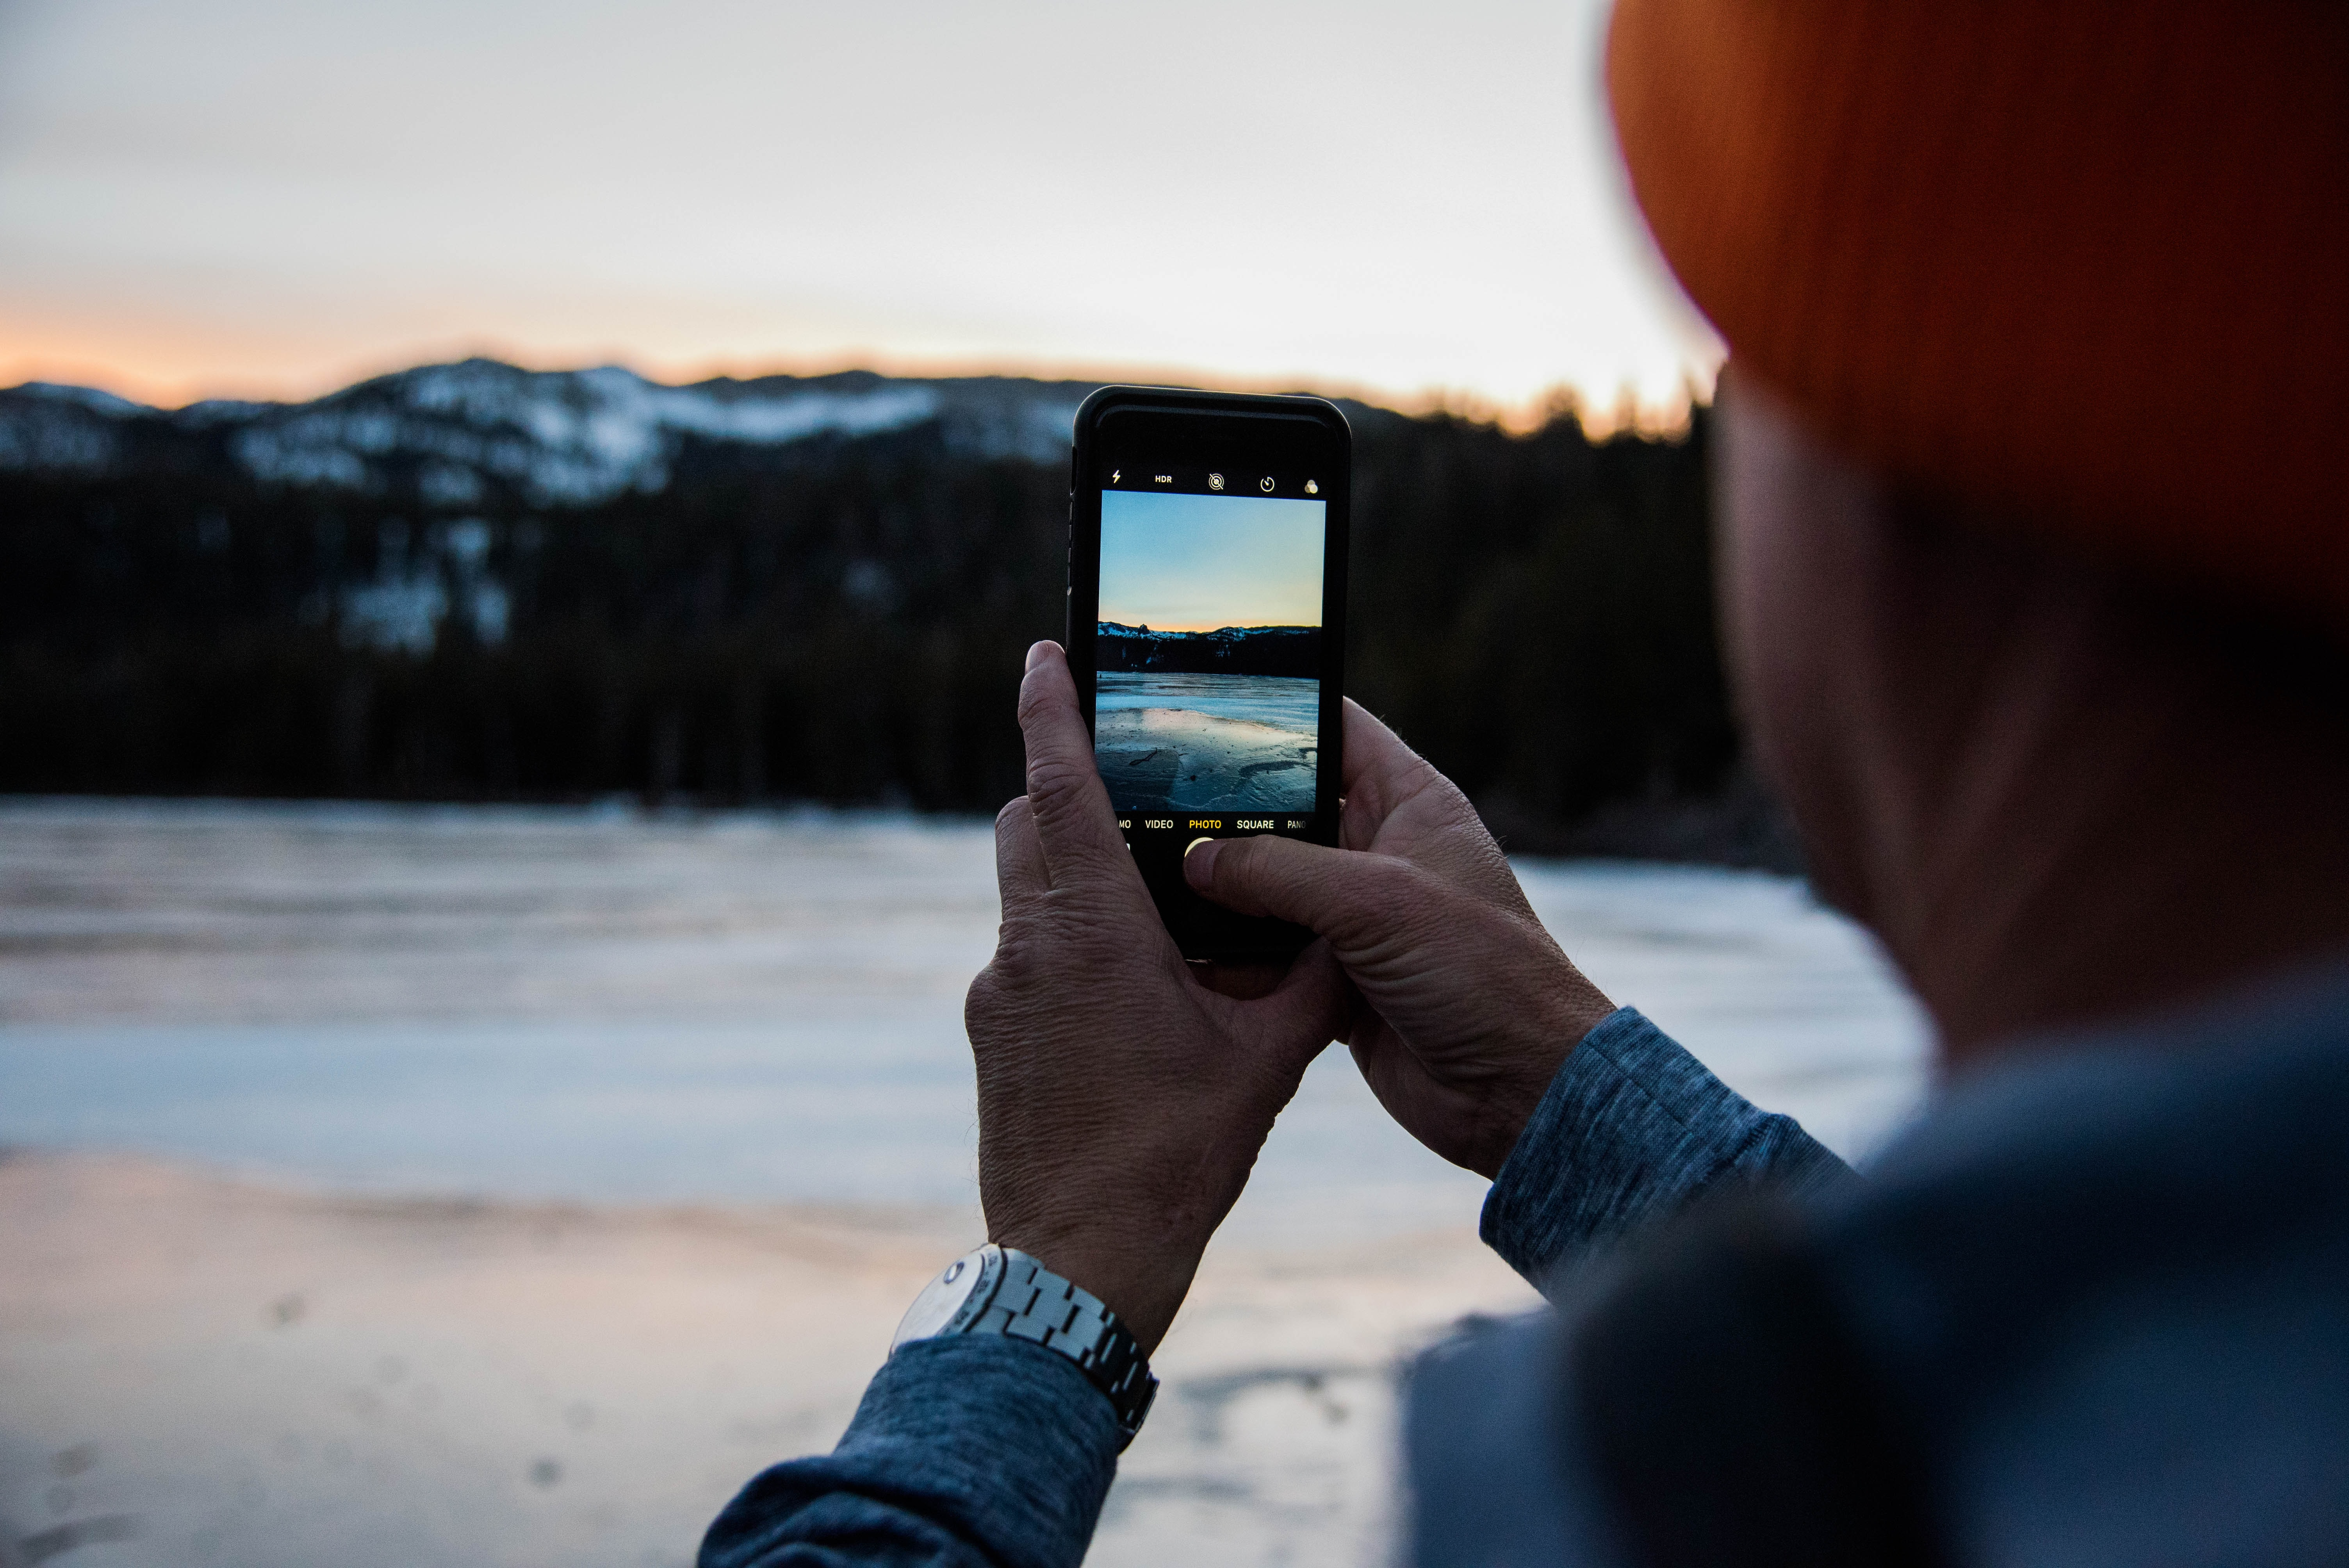 person holding smartphone taking picture of body of water